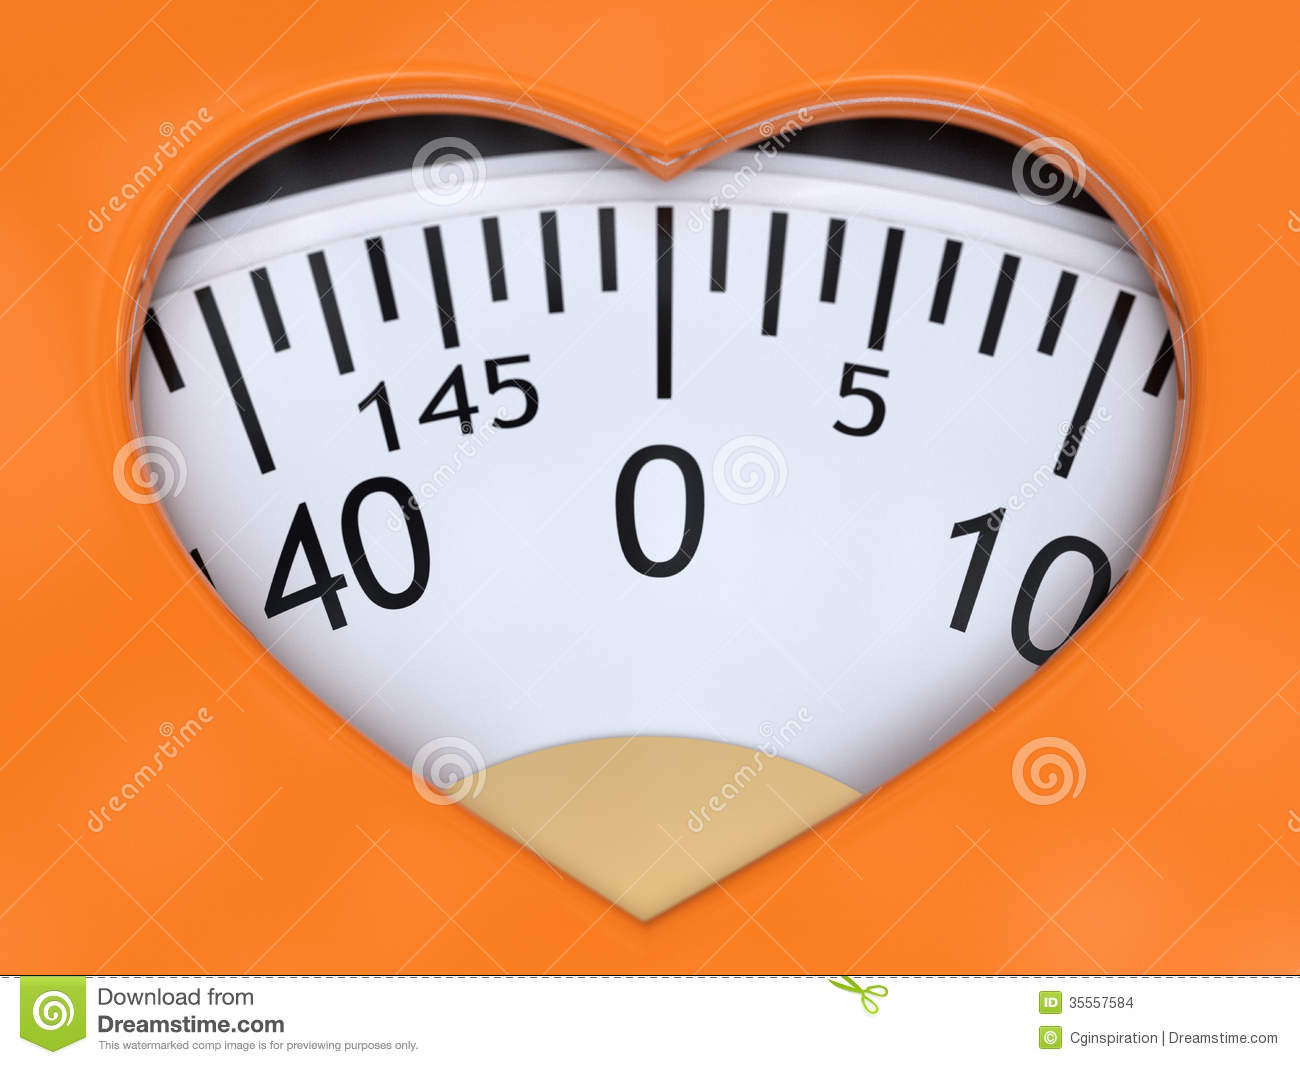 Healthy Weight stock photo. Image of balance, scale ...